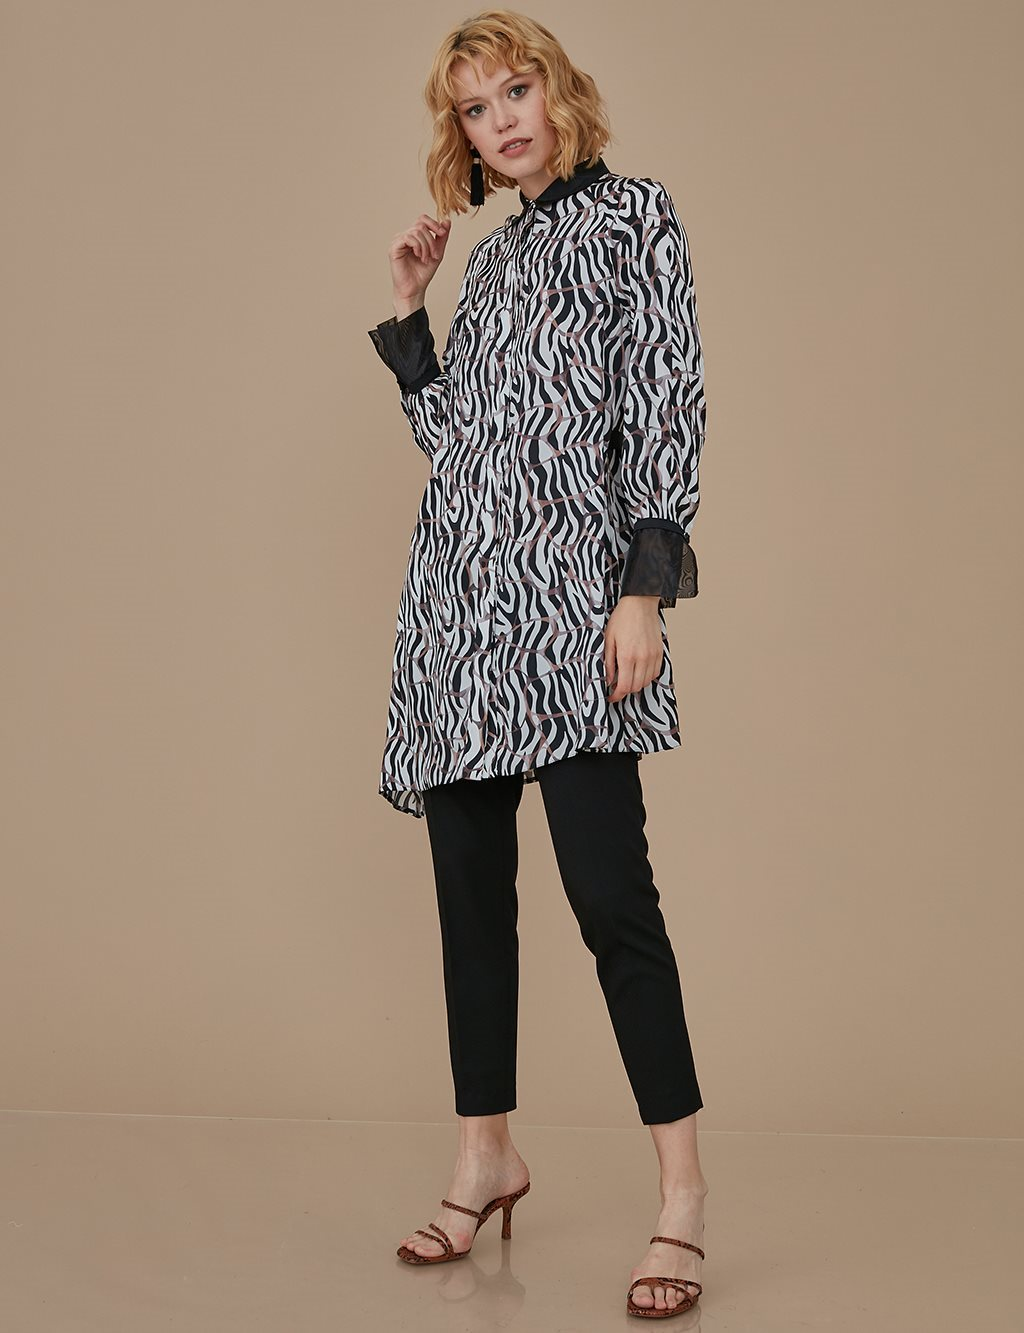 Patterned Tunic A9 21132 Black